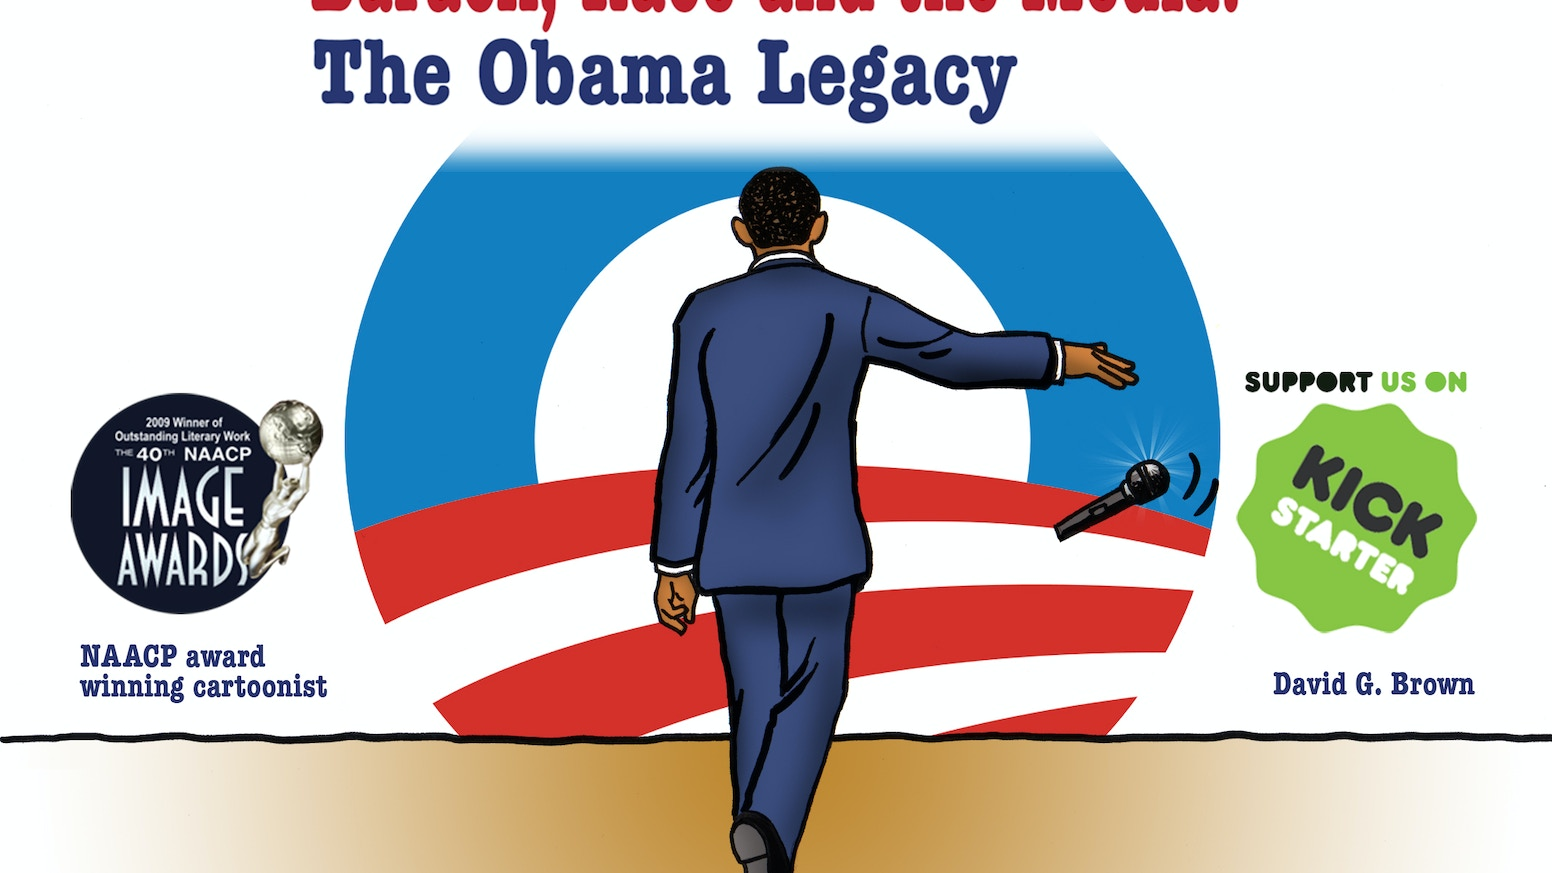 Political cartoon book focusing on the journey and legacy of the first American American President Barack Hussein Obama. Now available on Amazon